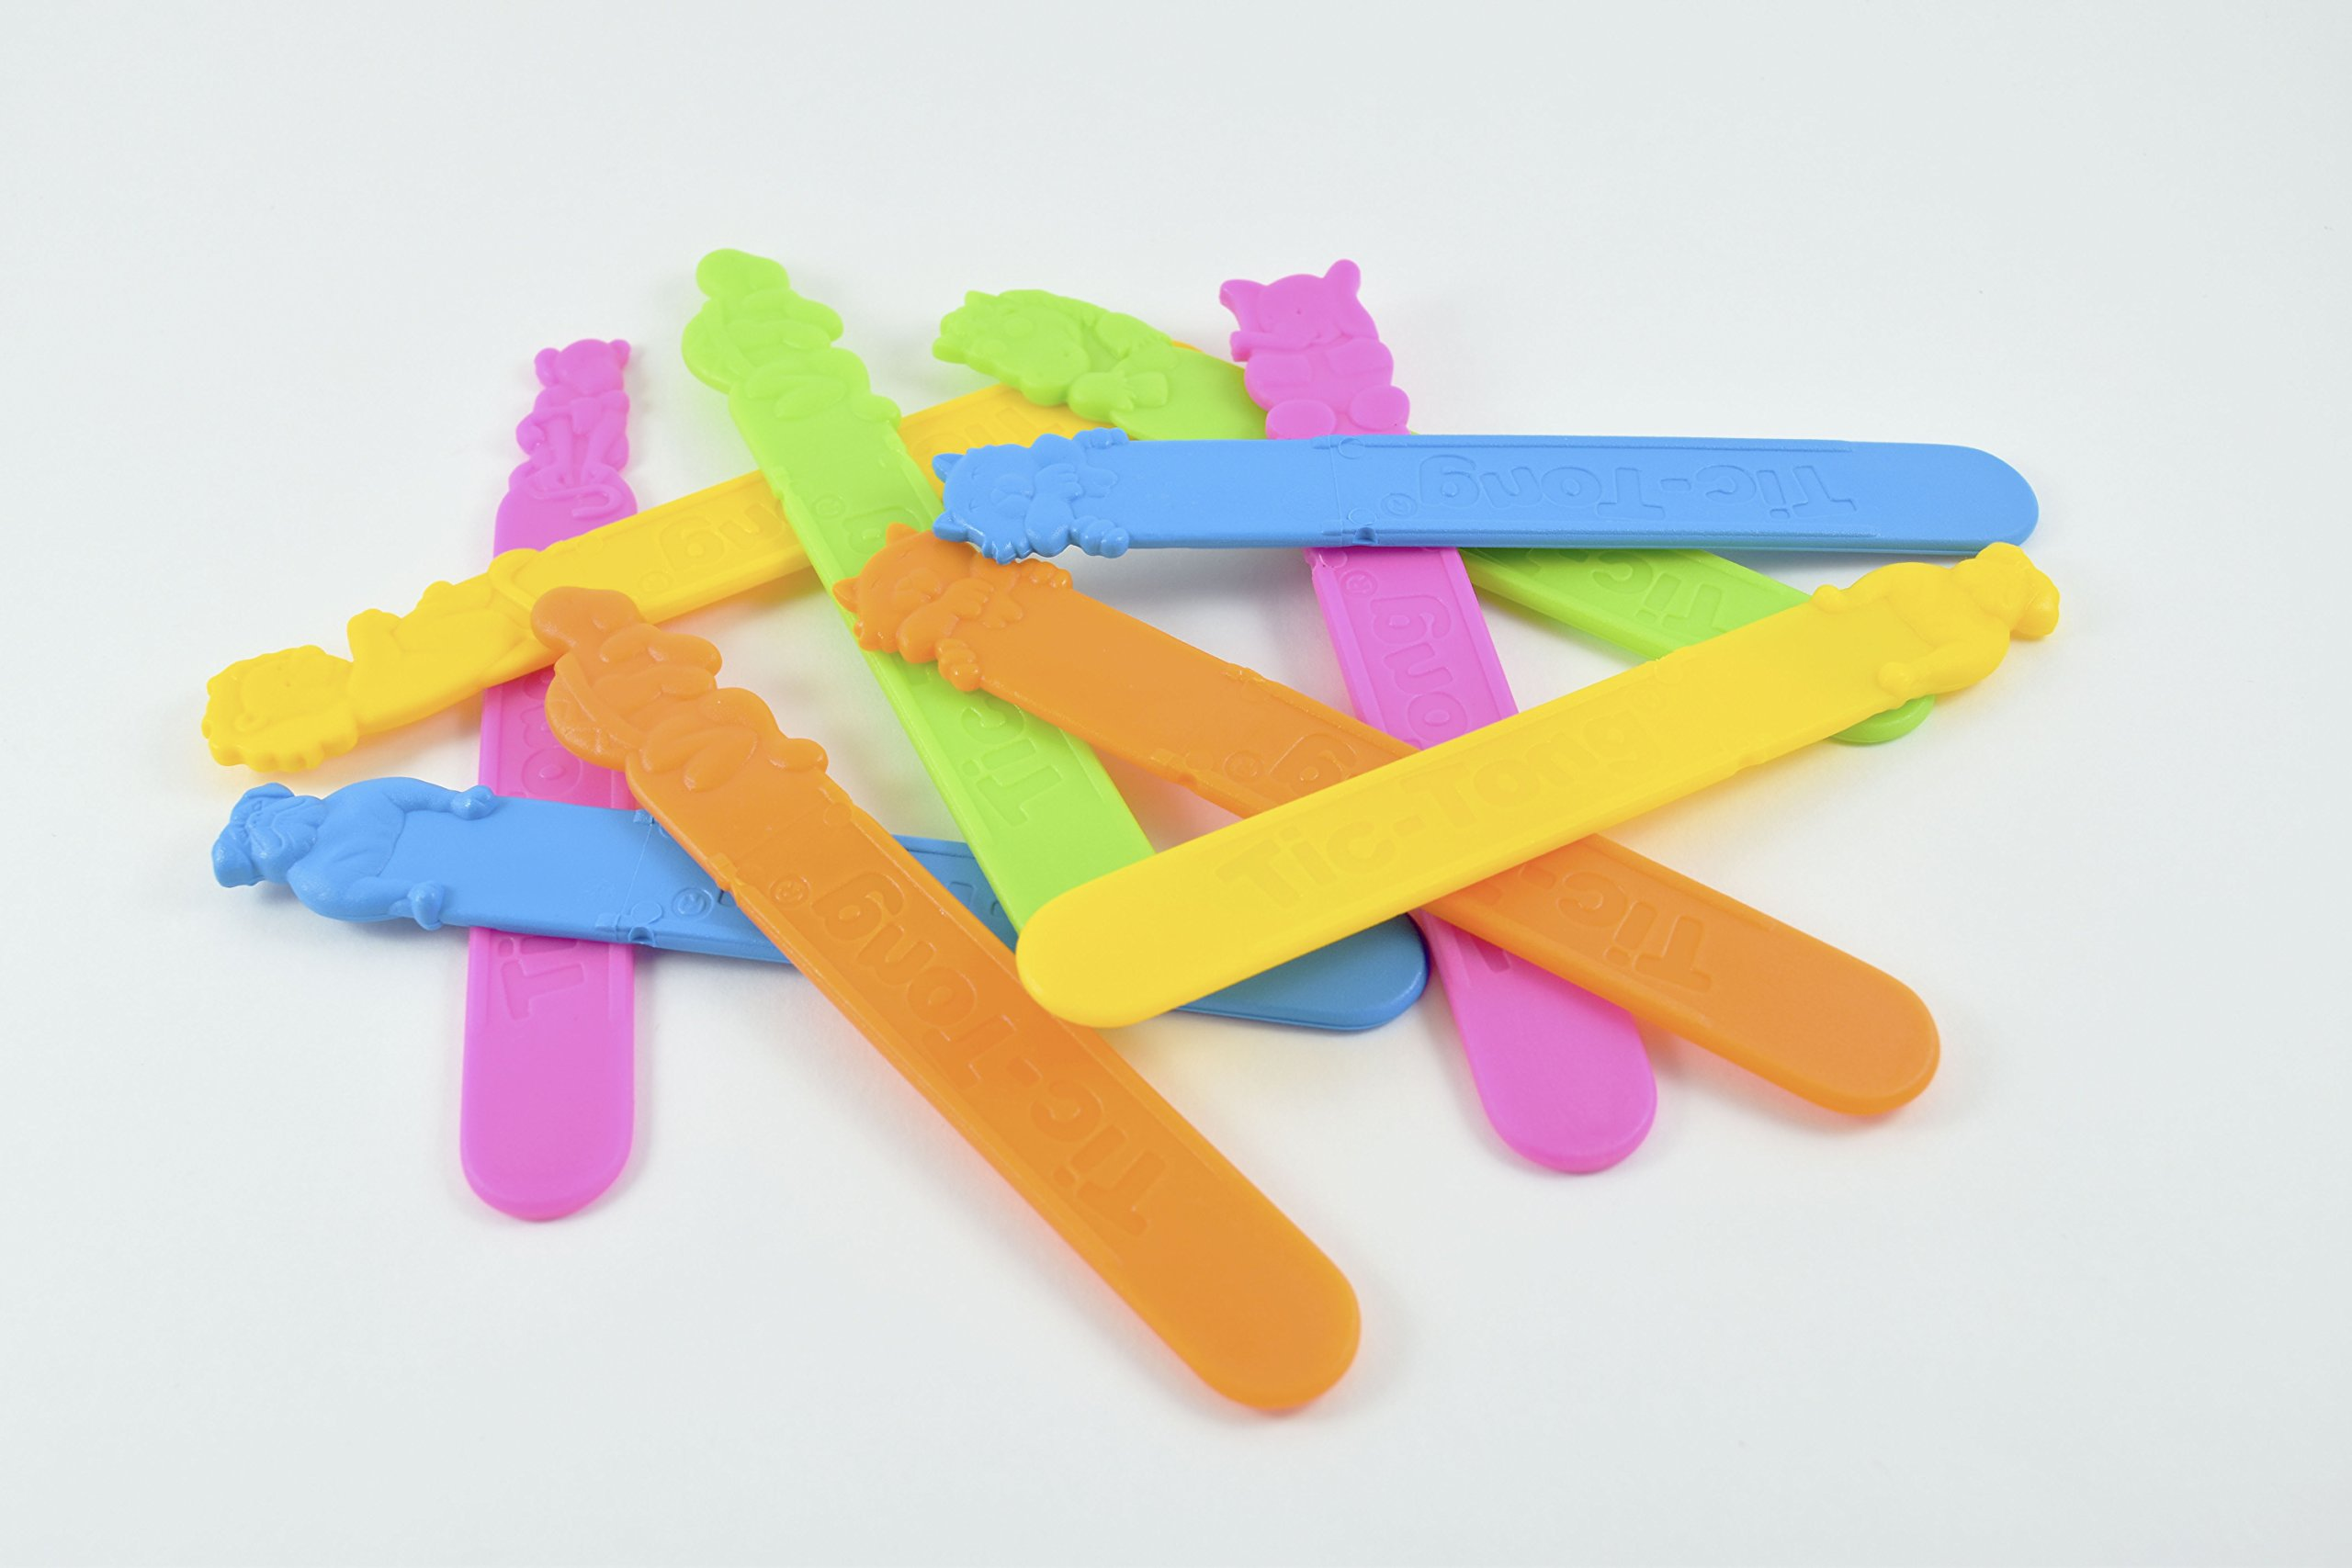 Tic-Tongᵀᴹ Animal Jr. Model - Tutti-Frutti Flavored Tongue Depressors - 6 packs containing 40 units each